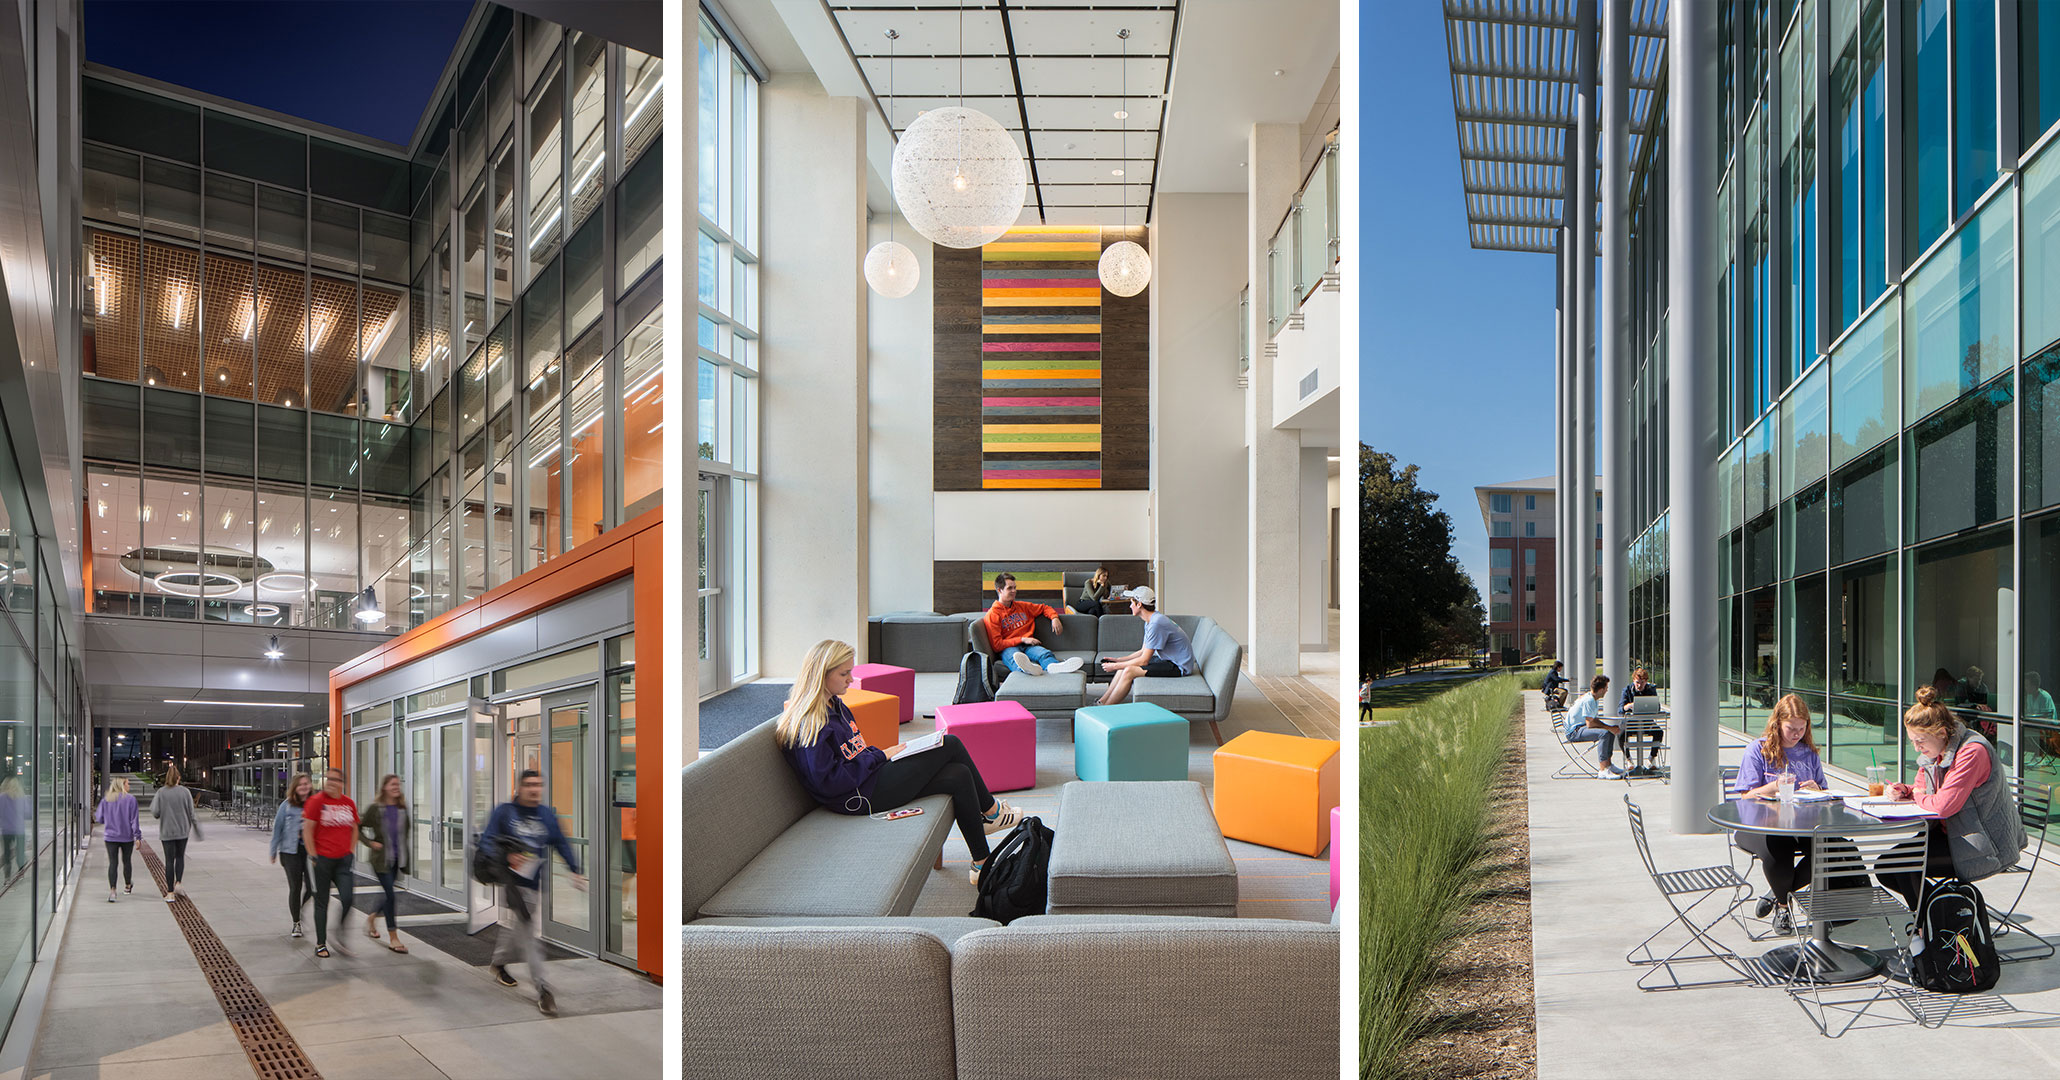 Clemson University worked with Boudreaux architects to design flexible student living spaces.